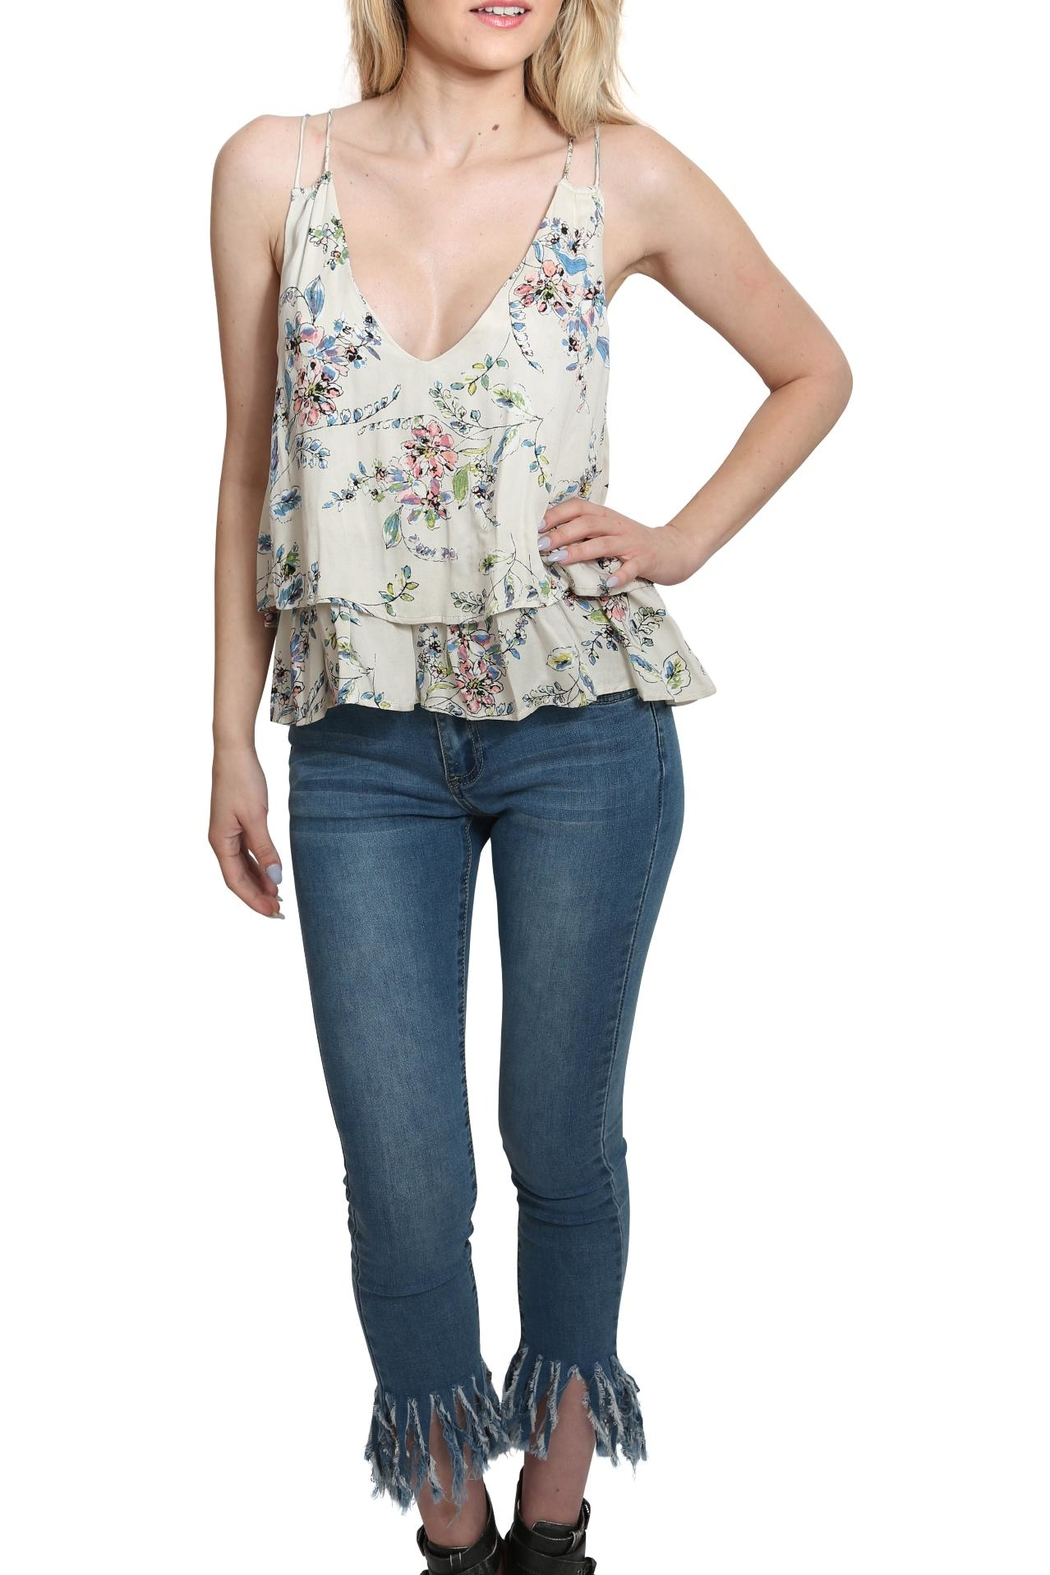 Lovestitch Printed Floral Tank Top - Main Image